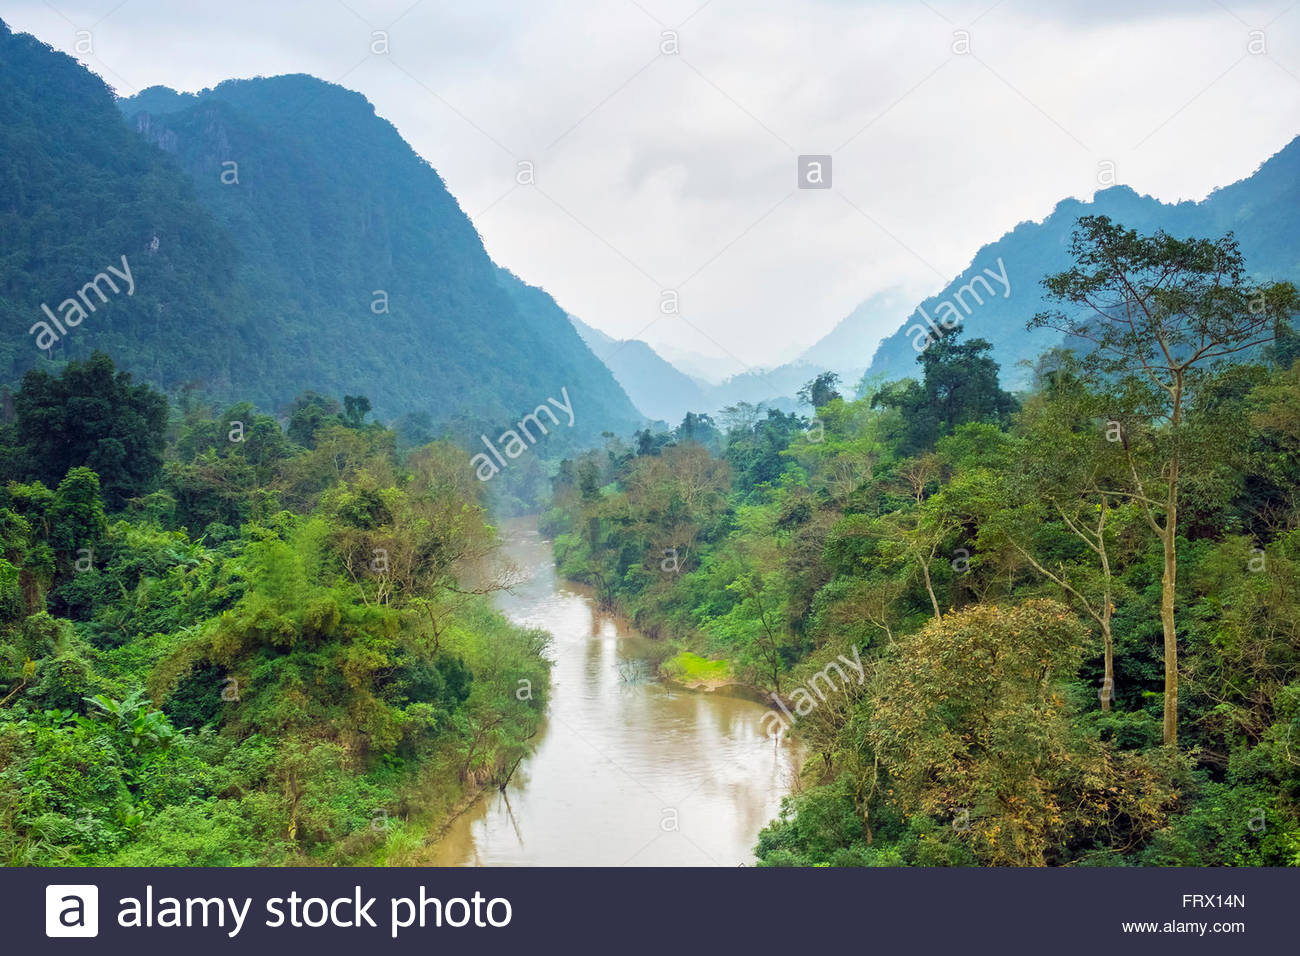 Paysage de la jungle dans le parc national de Phong Nha-Ke Bang, district de Bo Trach, Province de Quang Binh, Vietnam Photo Stock